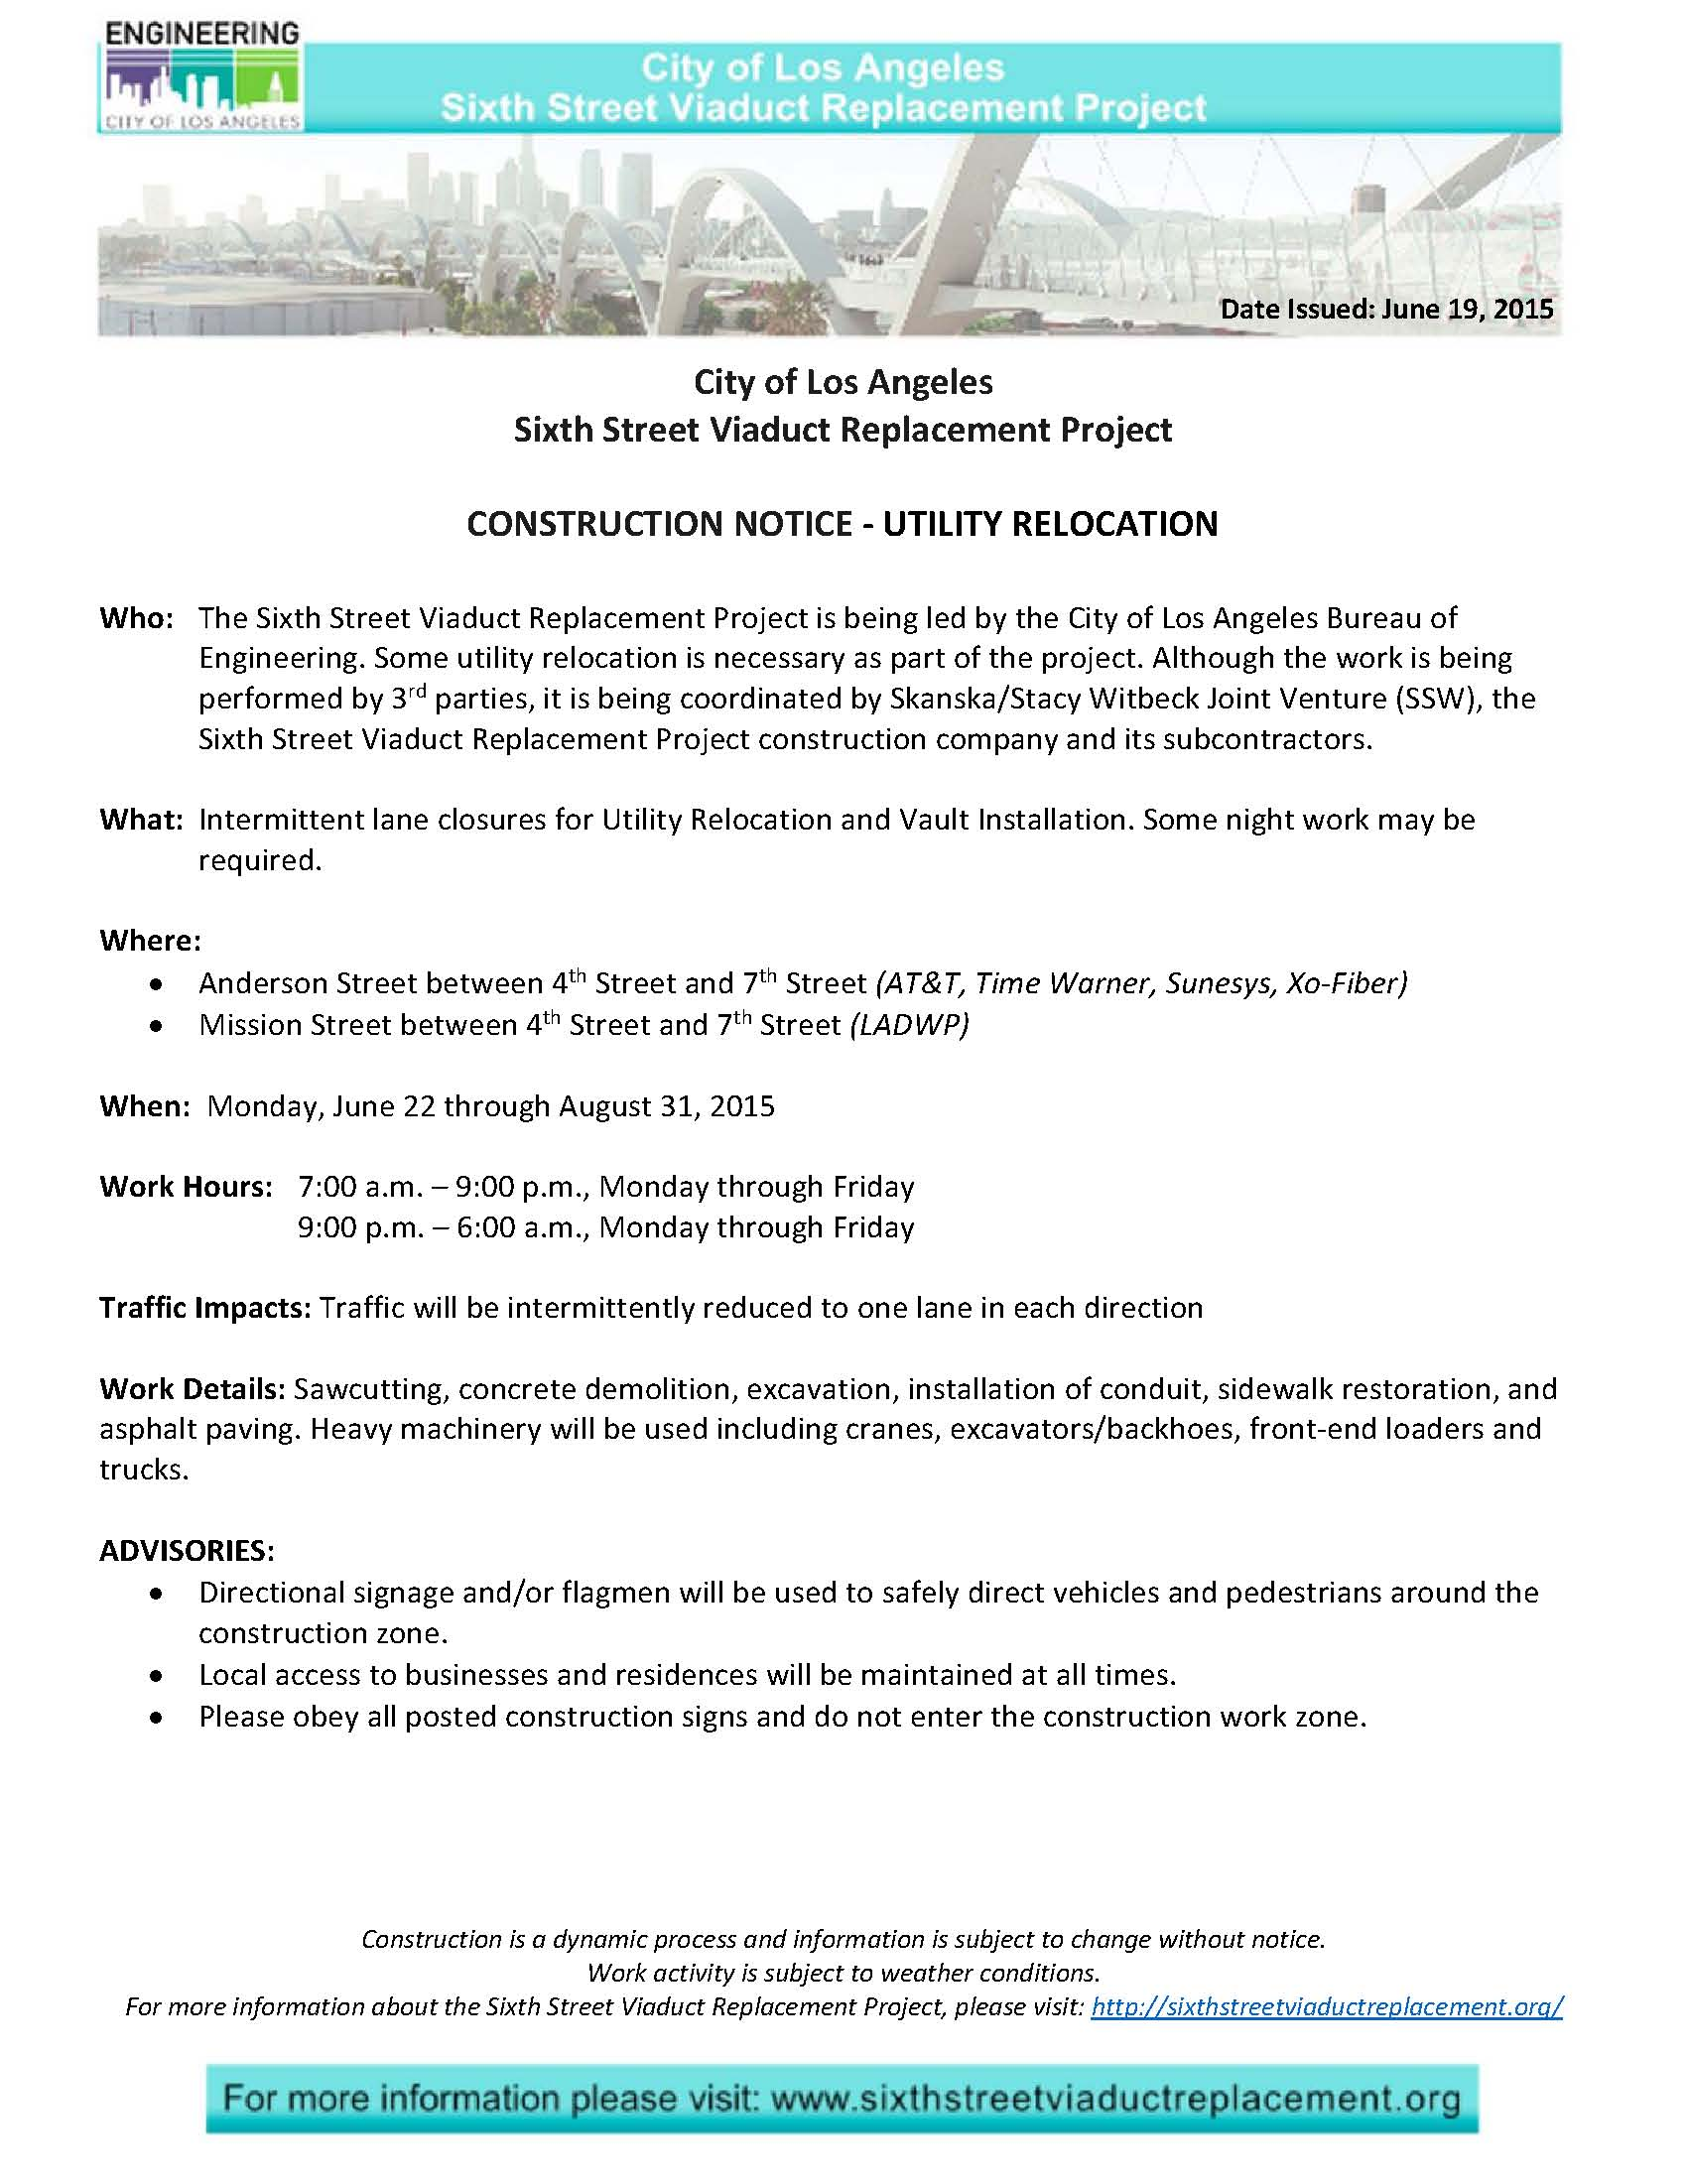 06162015_Final_Construction_Notice_Anderson_and_Mission_Utility_Relocation_Page_1.jpg